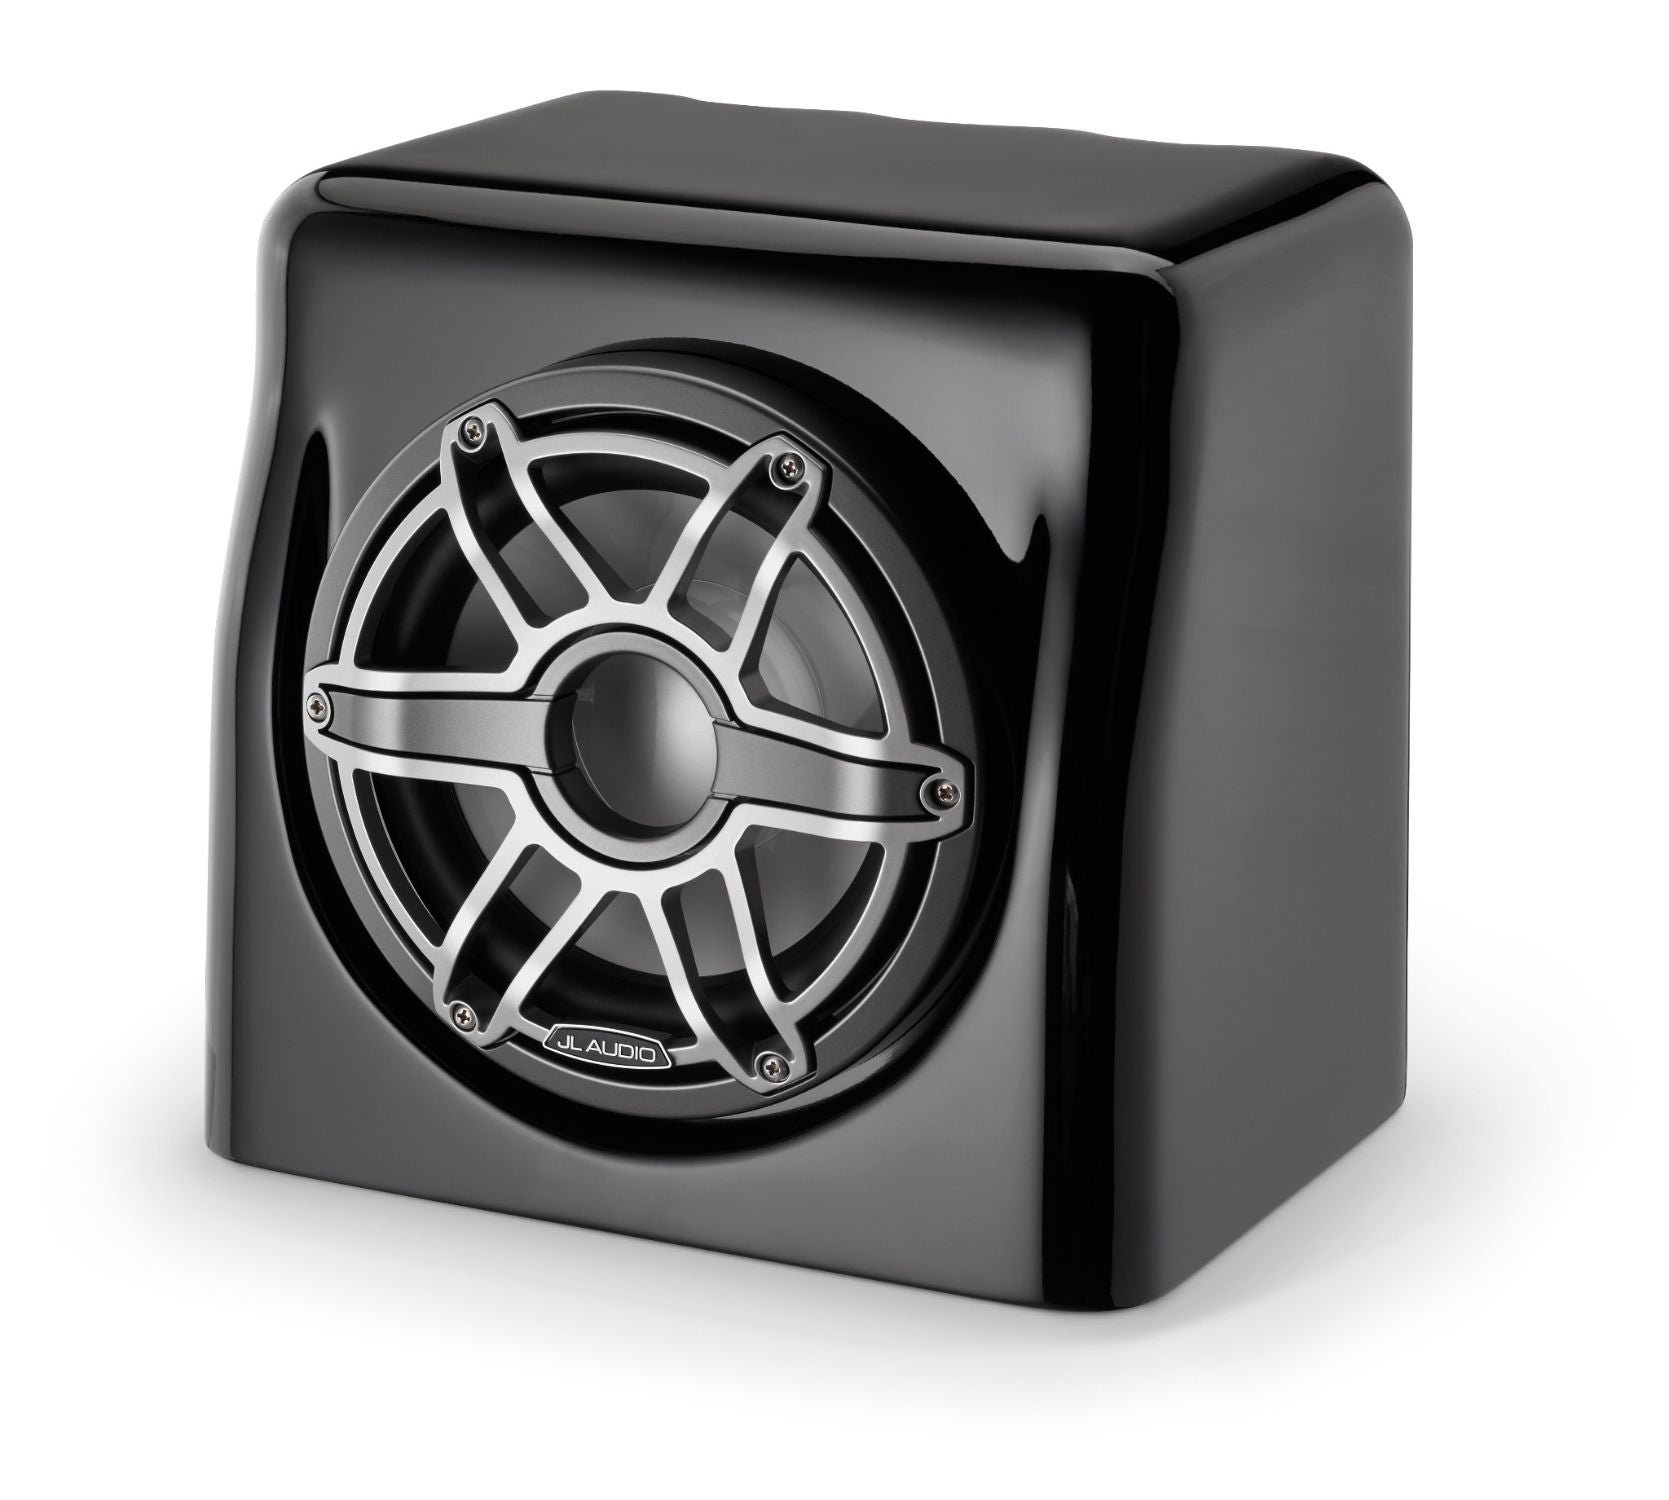 Front of M6-8FES-Gb-S-GmTi-4 Enclosed Subwoofer Facing Left